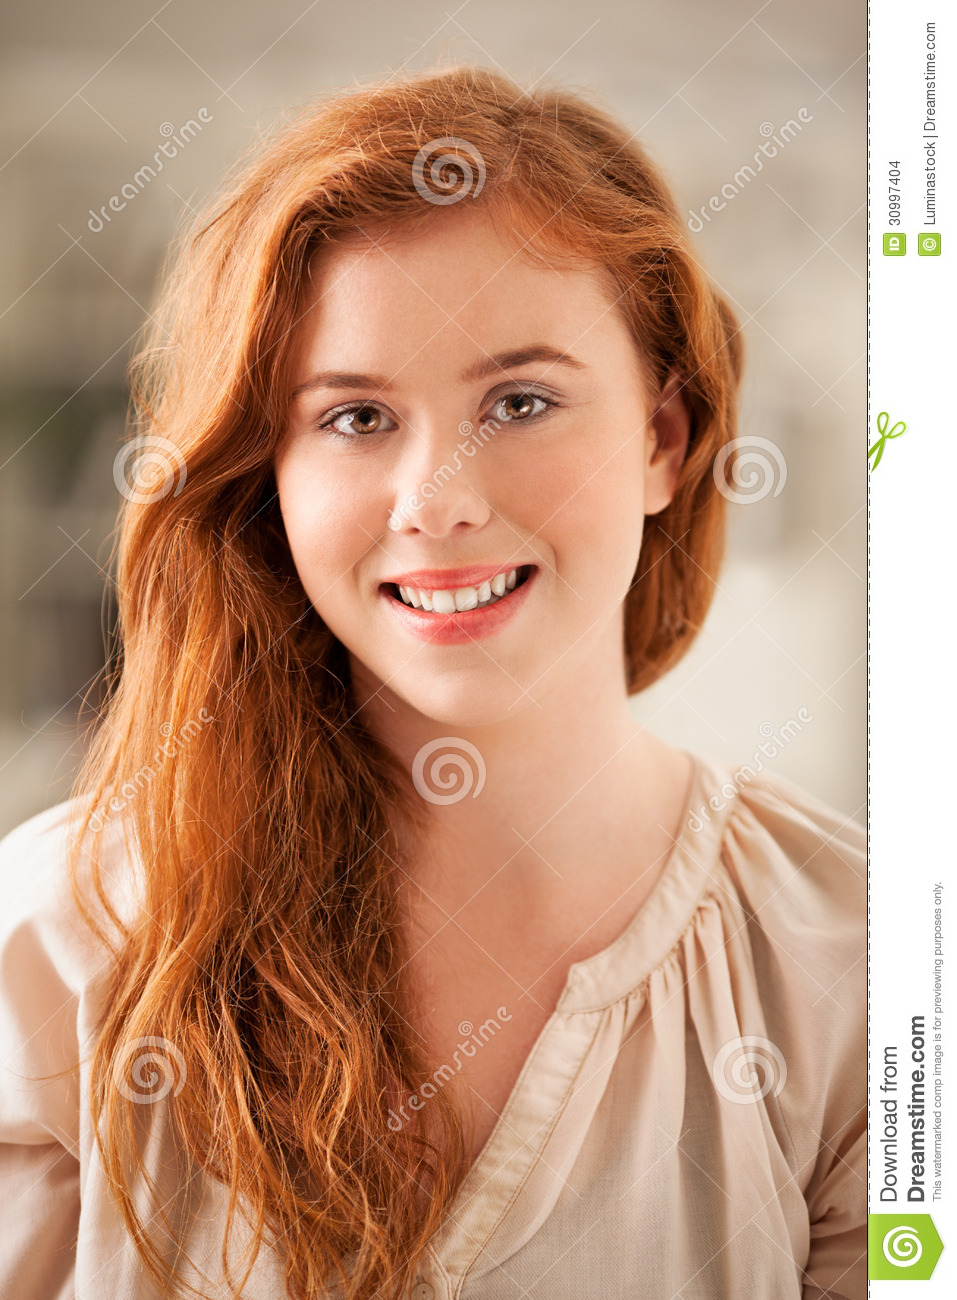 Red Haired Woman Stock Photo Image Of Camera Portrait